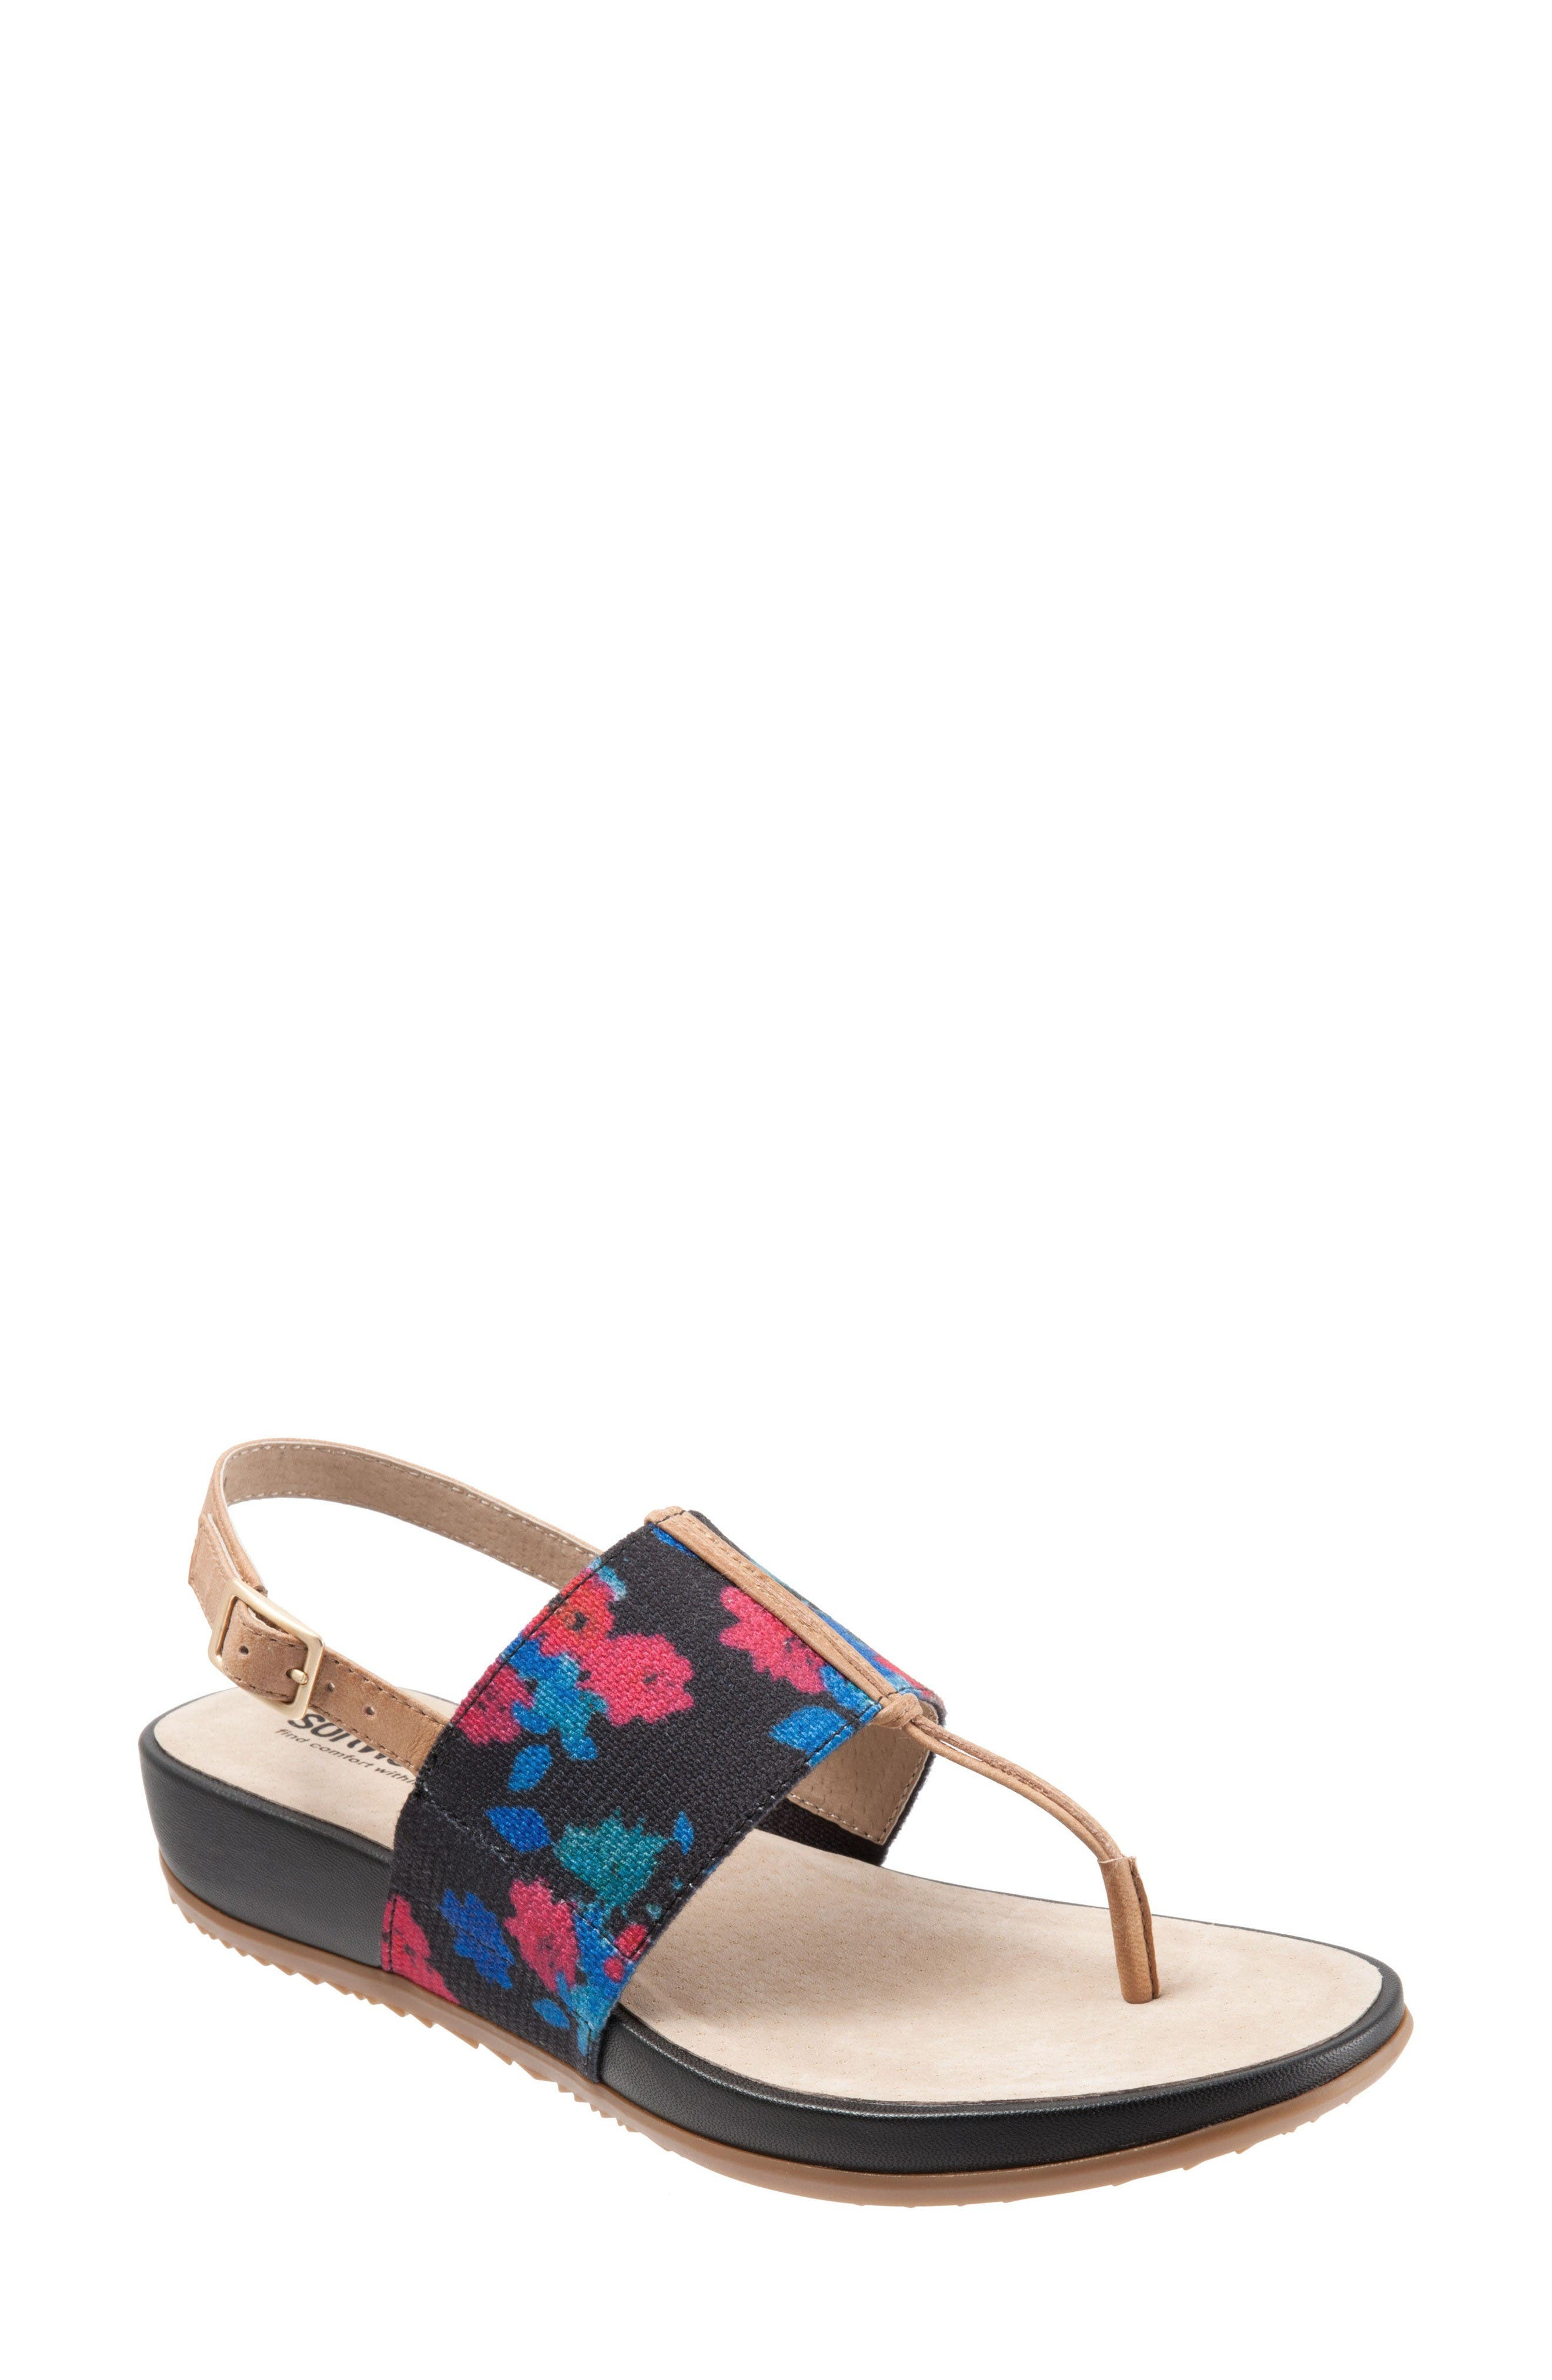 Main Image - SoftWalk® Daytona Sandal (Women)